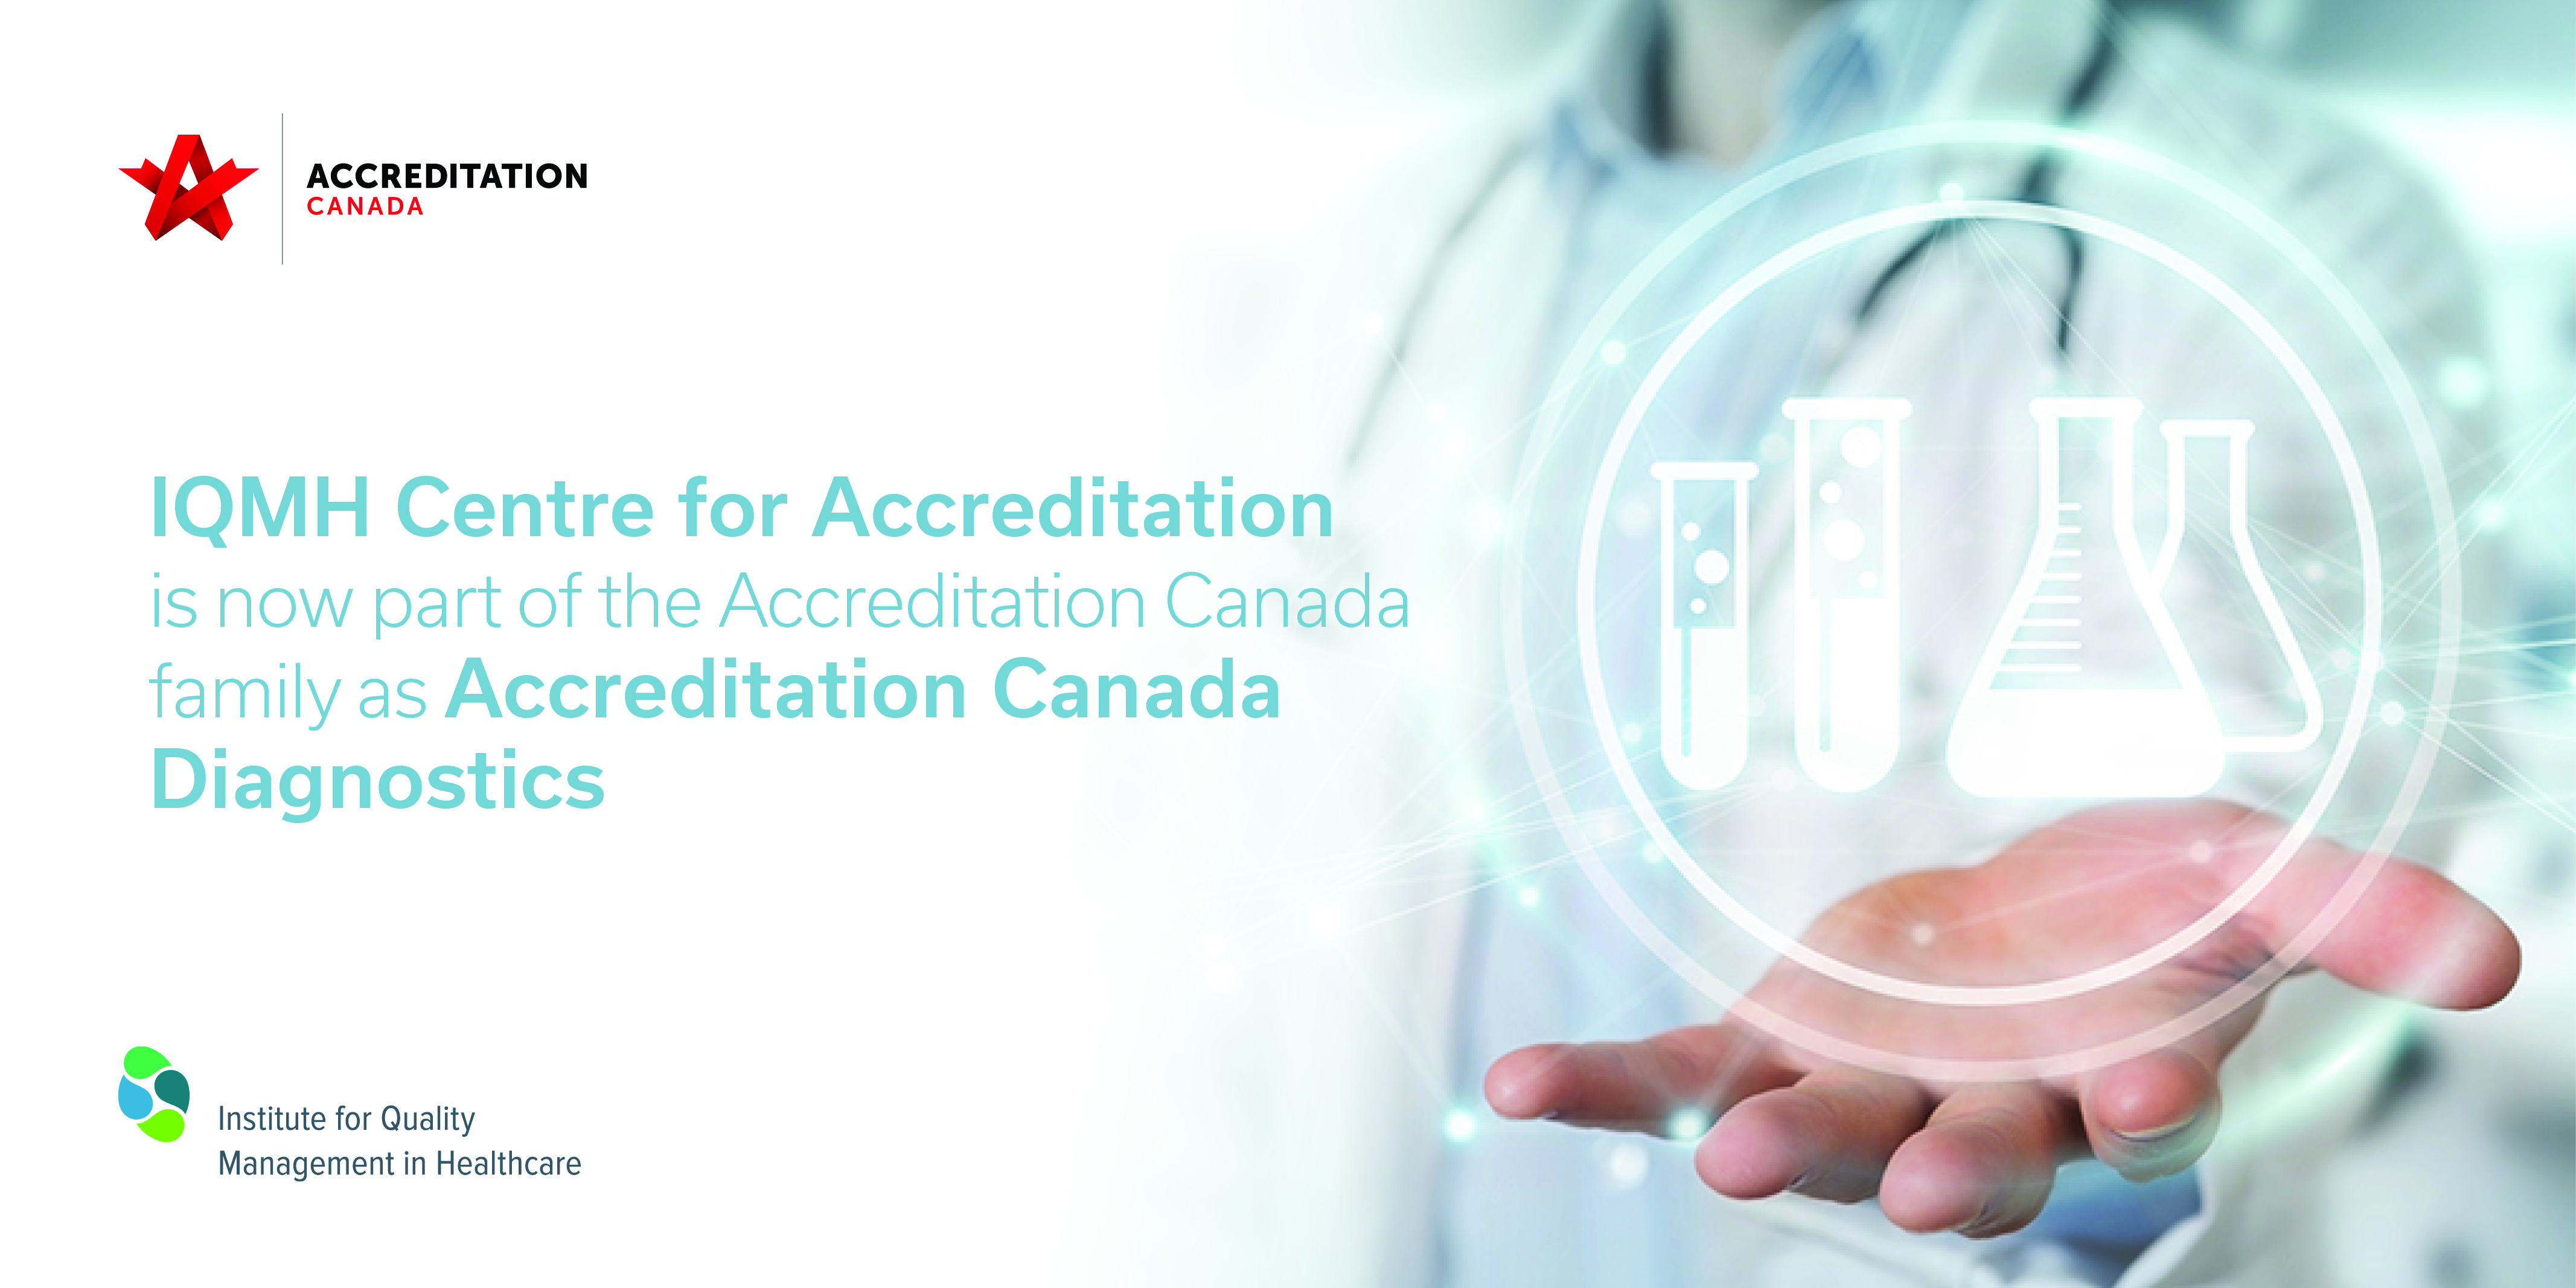 Accreditation Canada Diagnostics